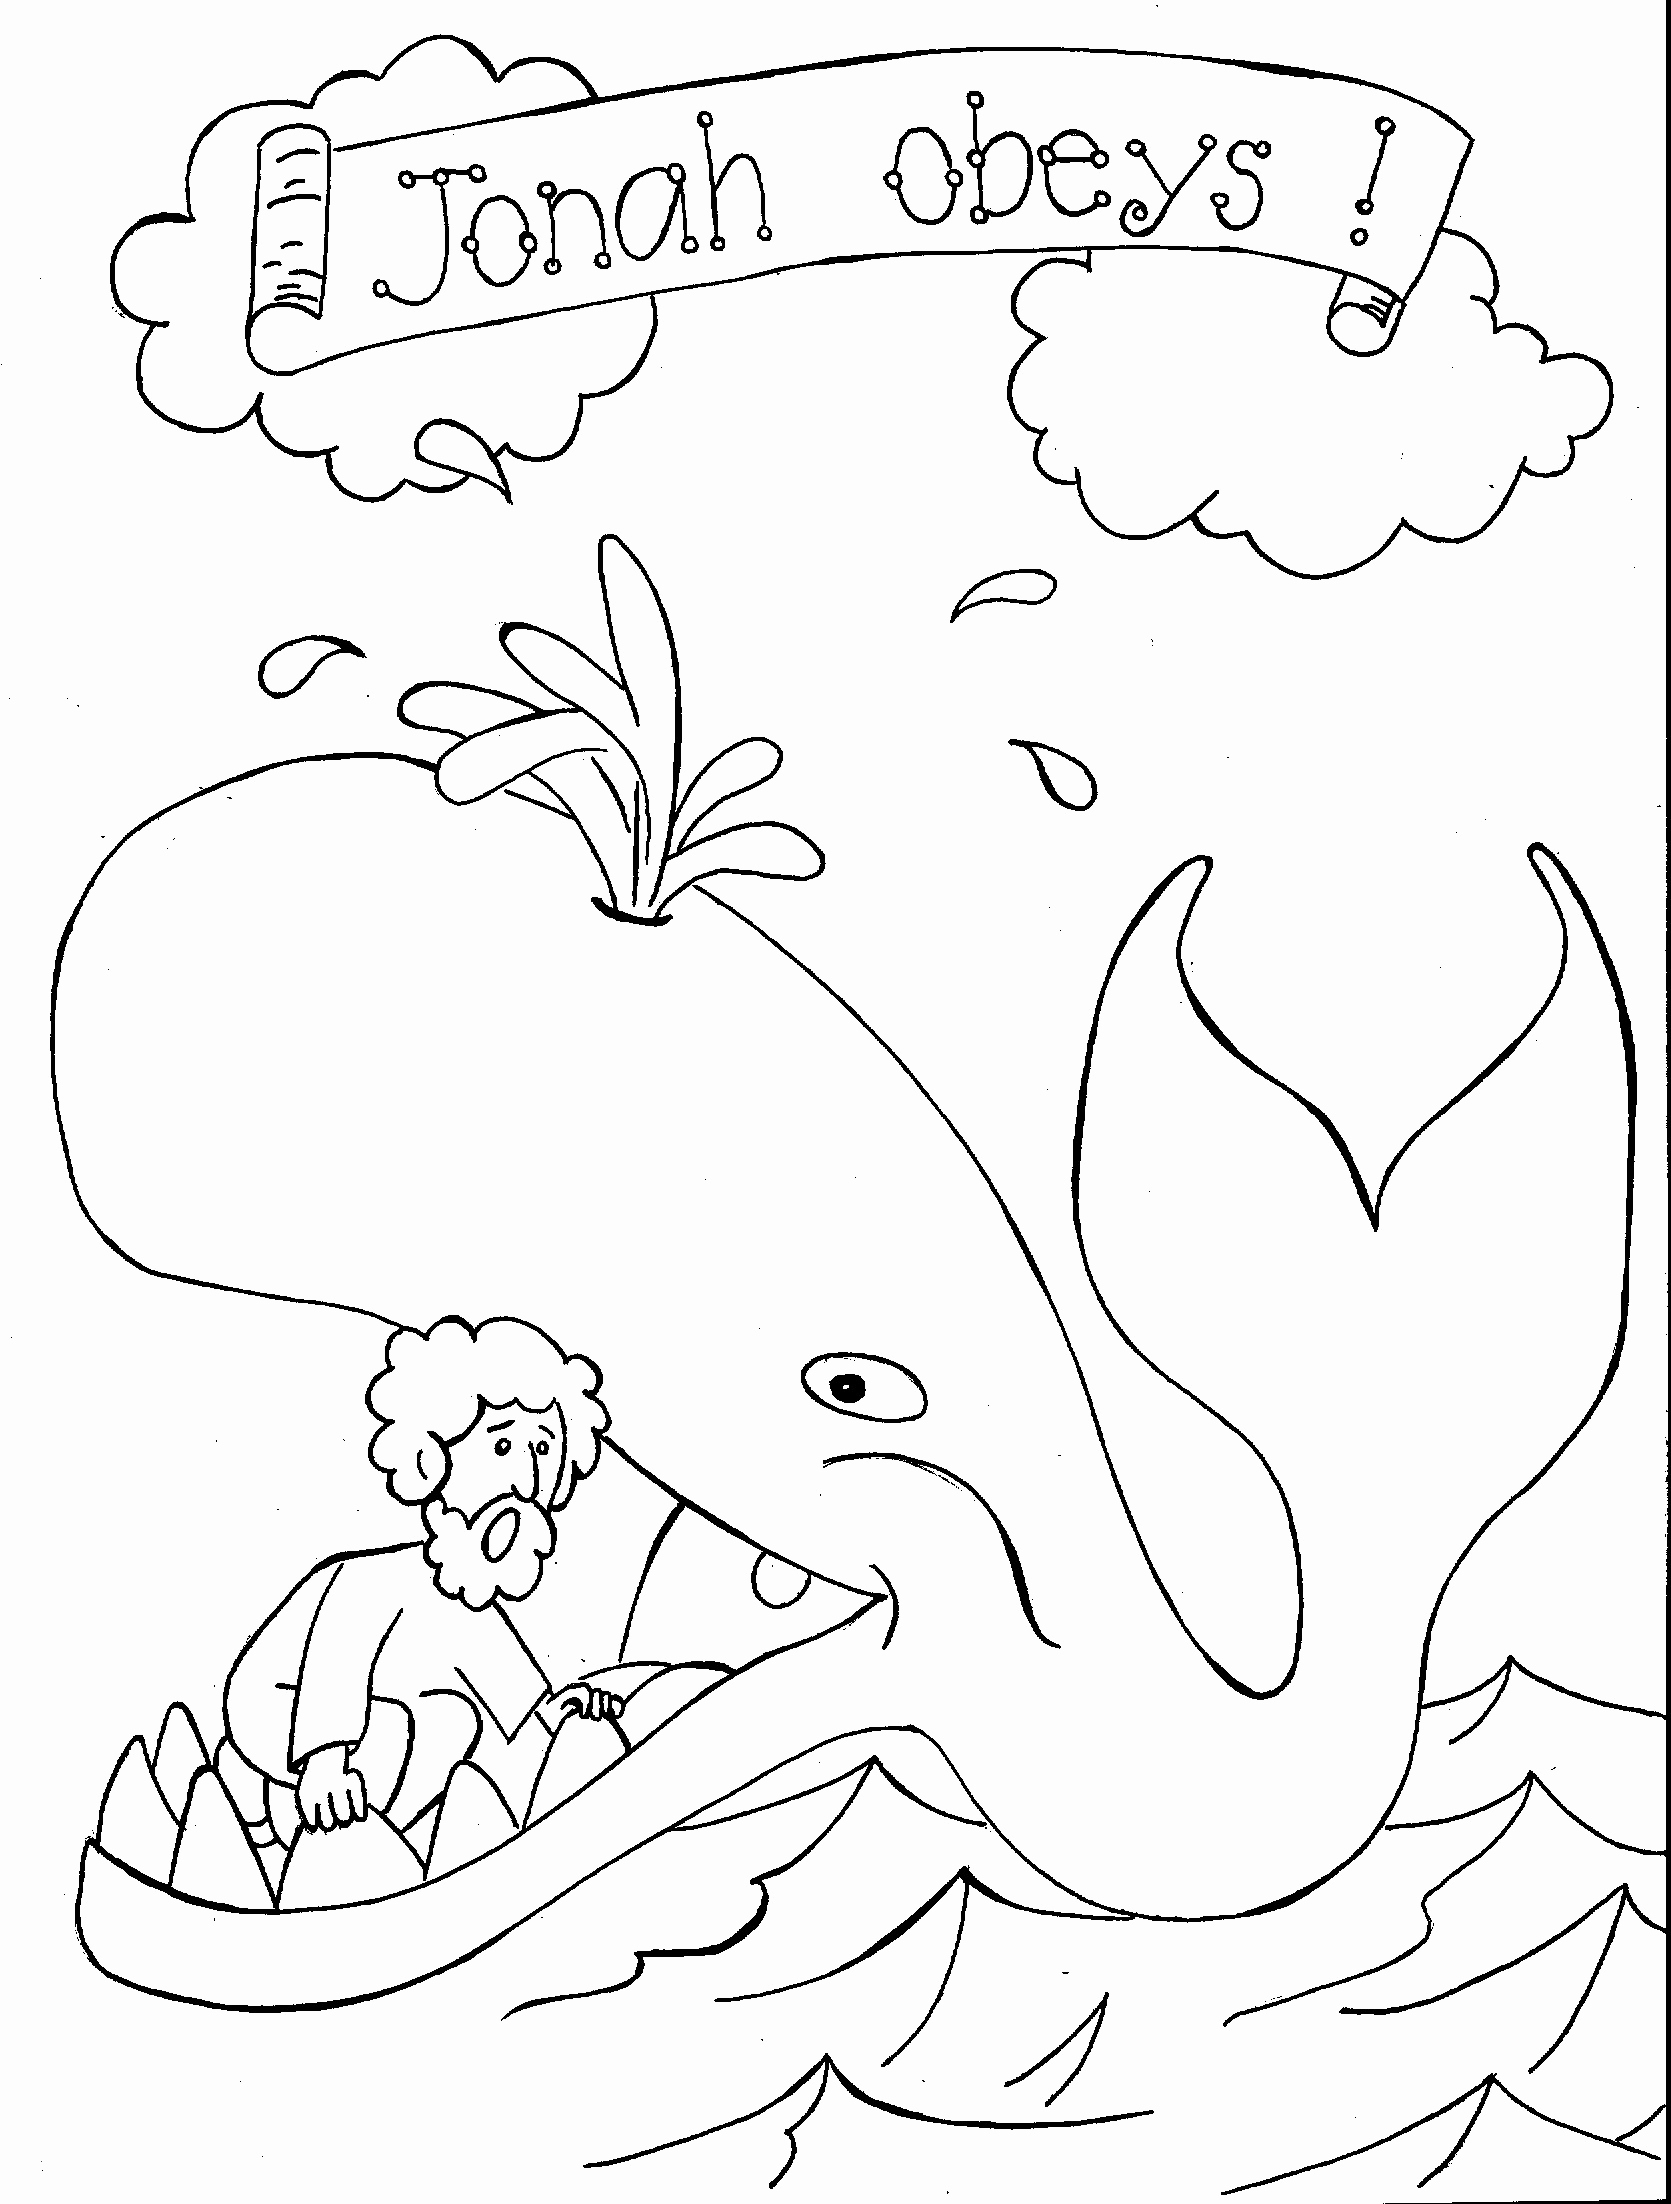 25 Free Bible Coloring Pages Kids Download | Coloring Sheets